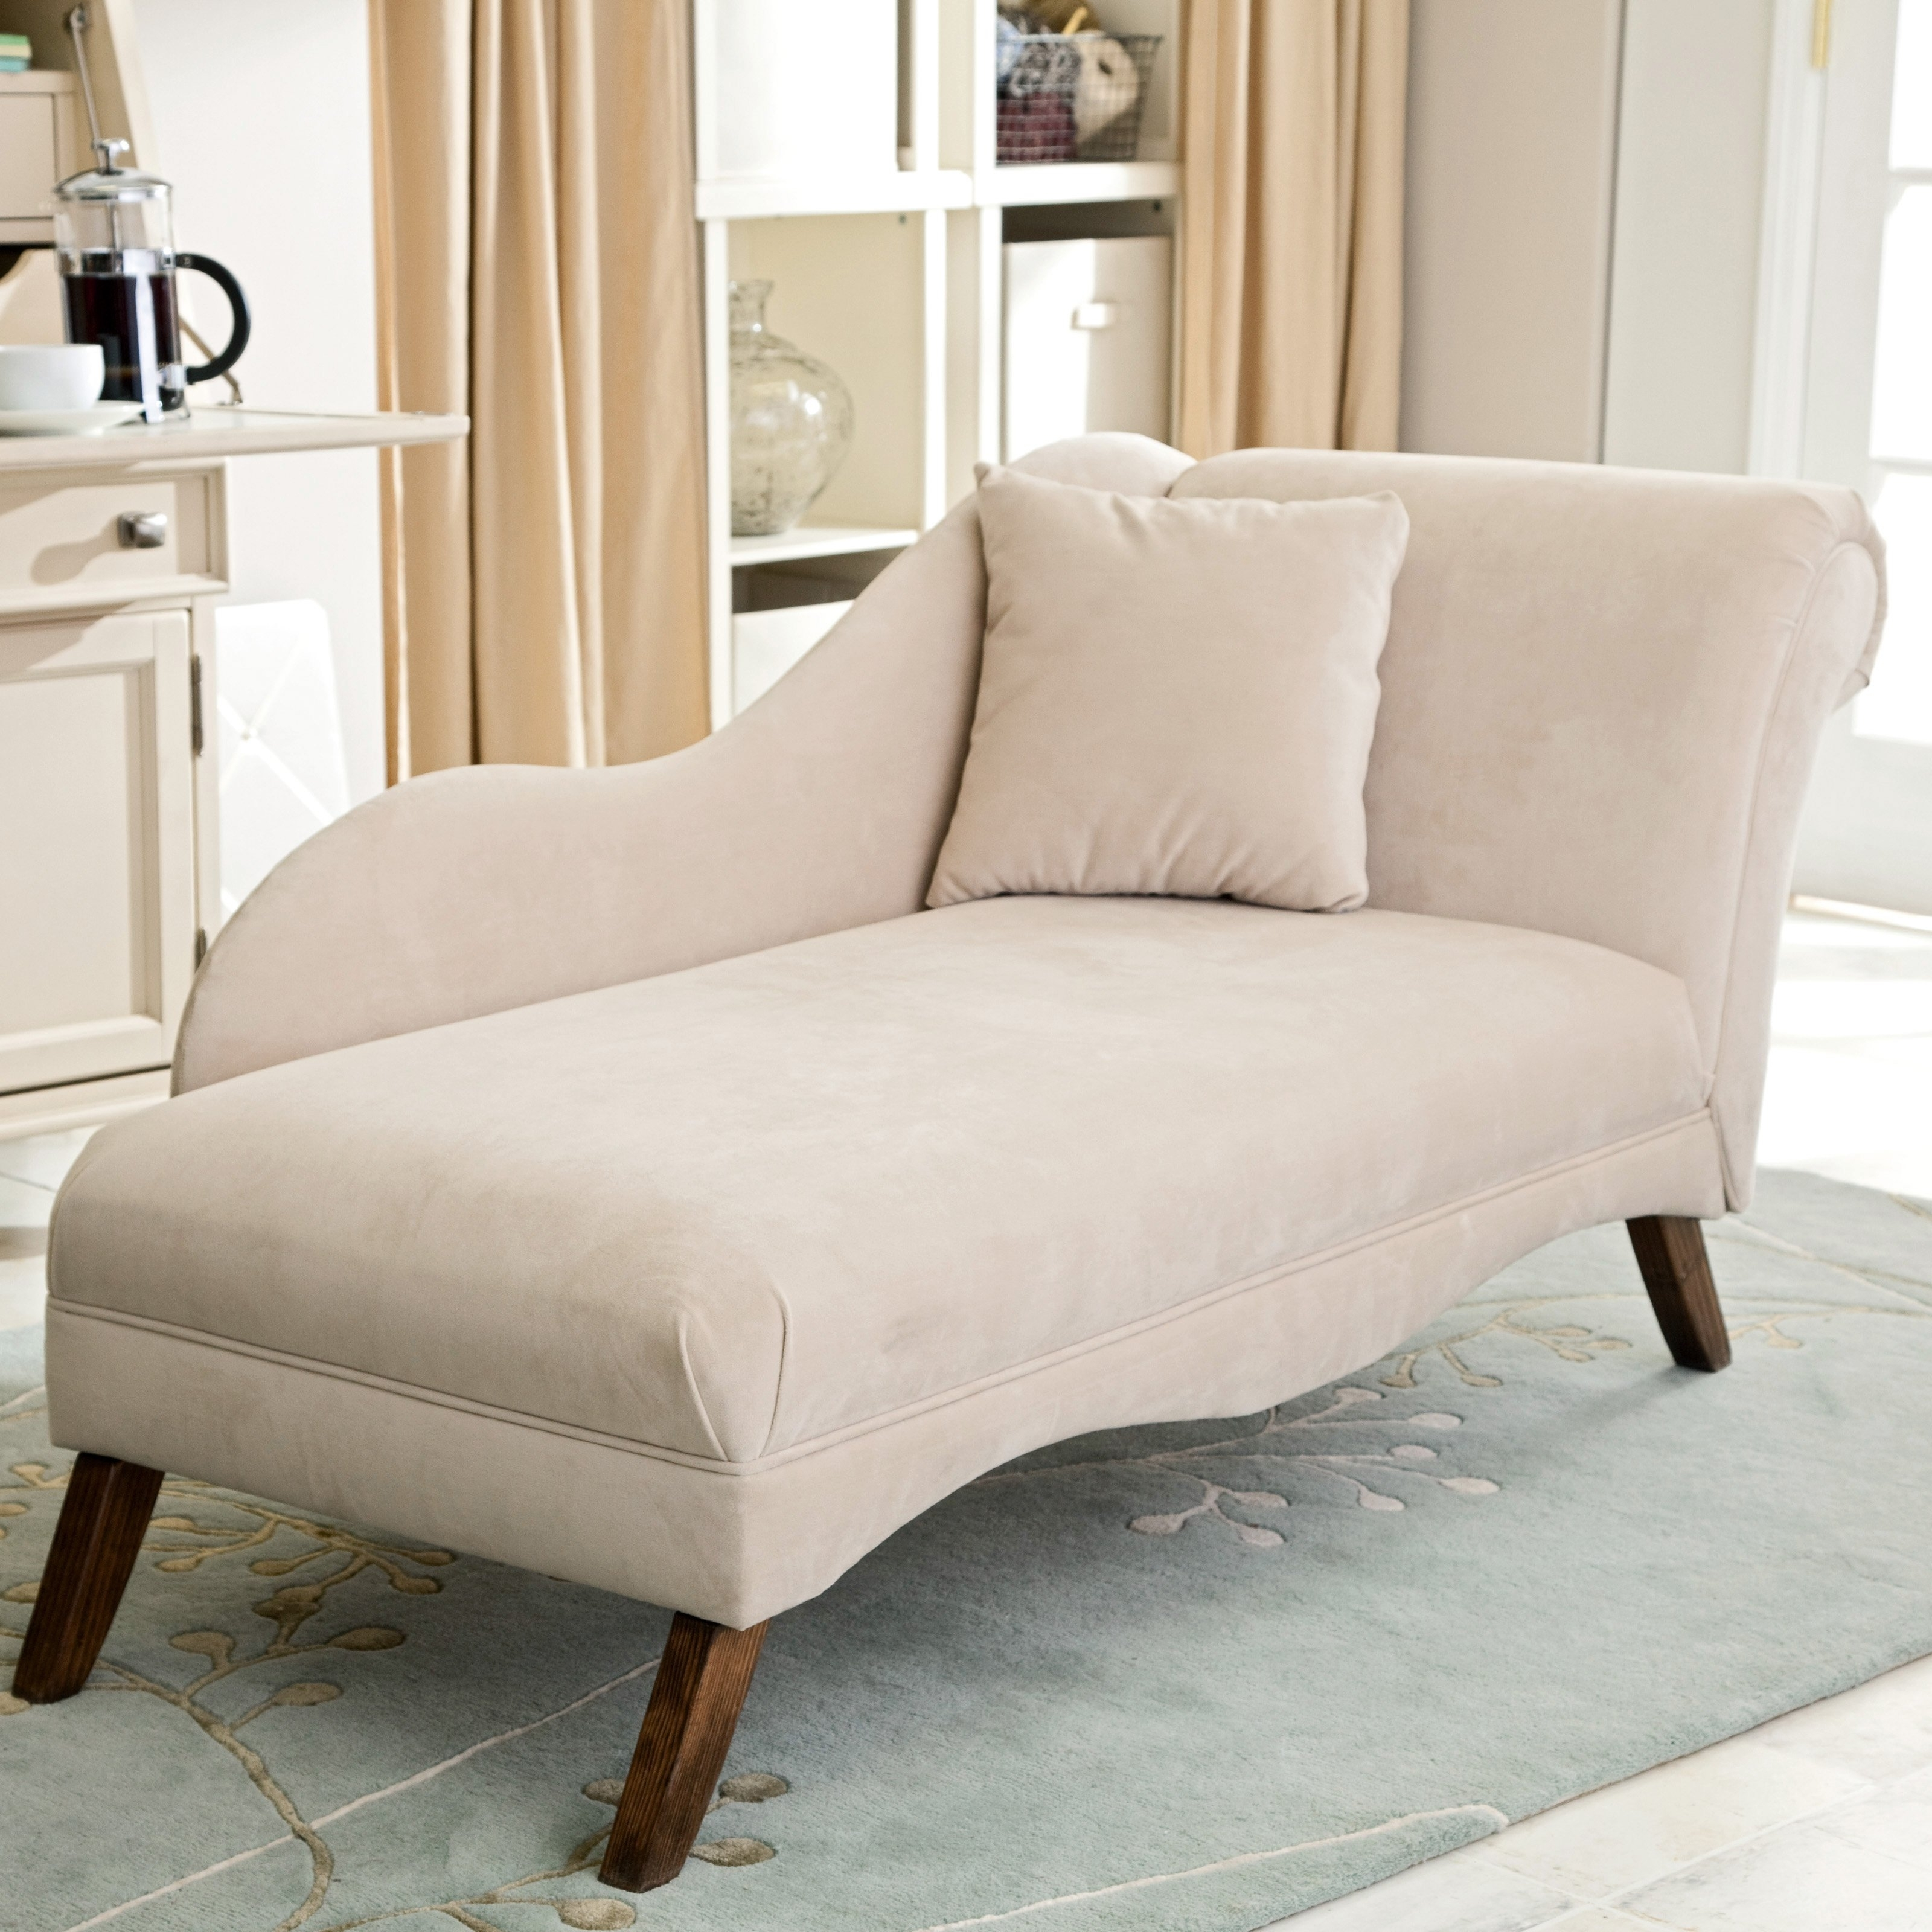 Chaise Chairs With Regard To Recent Chaise Lounge Chair – Symbol Of Style And Practicality (View 5 of 15)